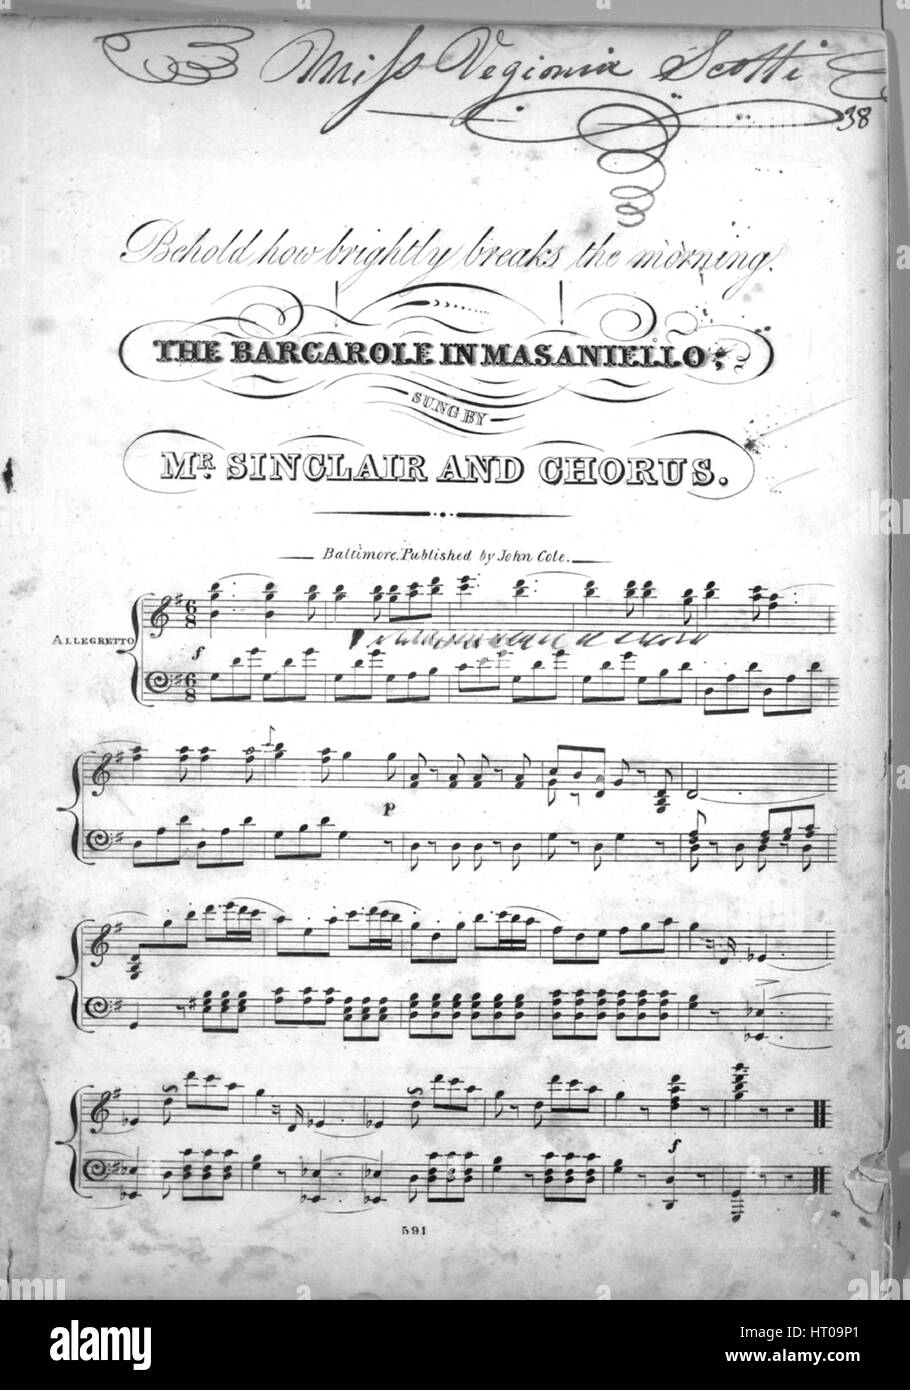 Sheet music cover image of the song 'Behold how brightly break the morning The Barcarole in Masaniello', - Stock Image